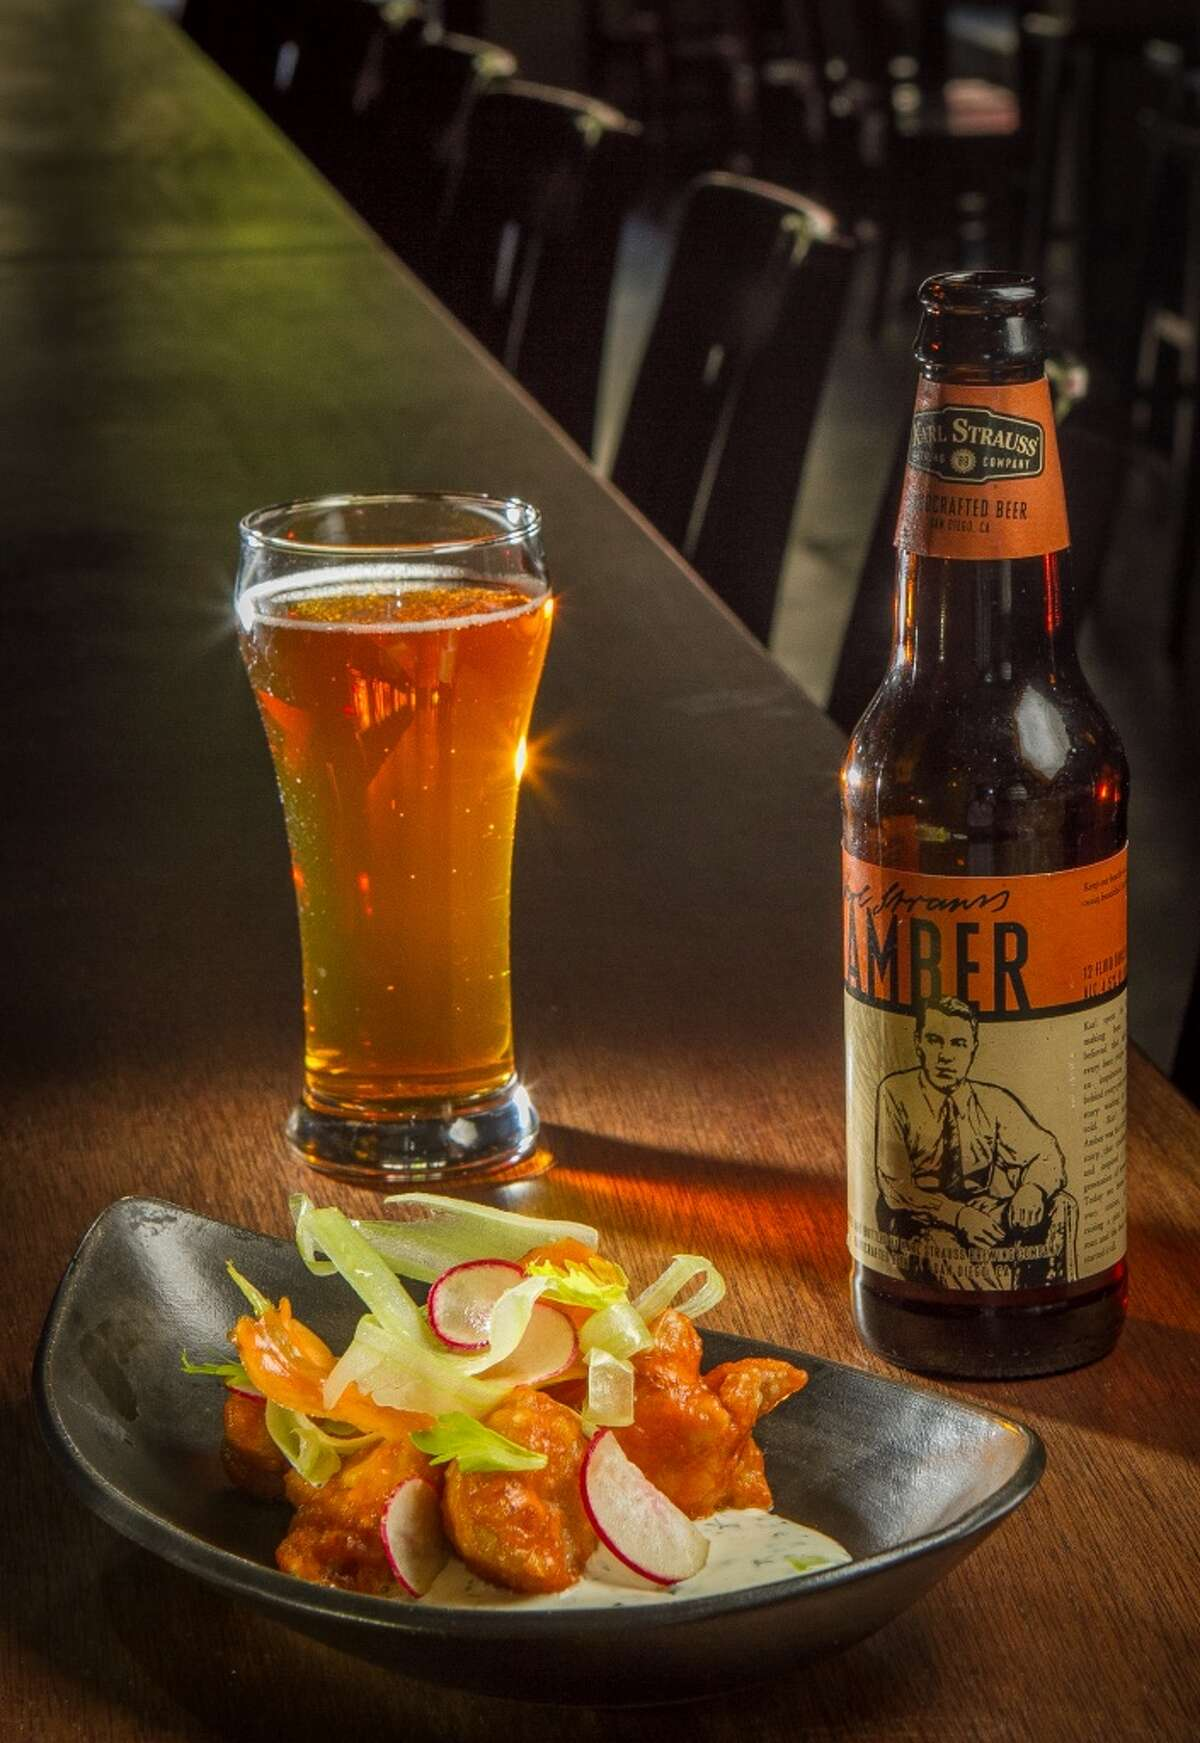 Sweetbreads, Buffalo Bob's Hot Sauce, Shaved Veg, Ranch ($12) with Karl Strauss Amber Lager ($5)